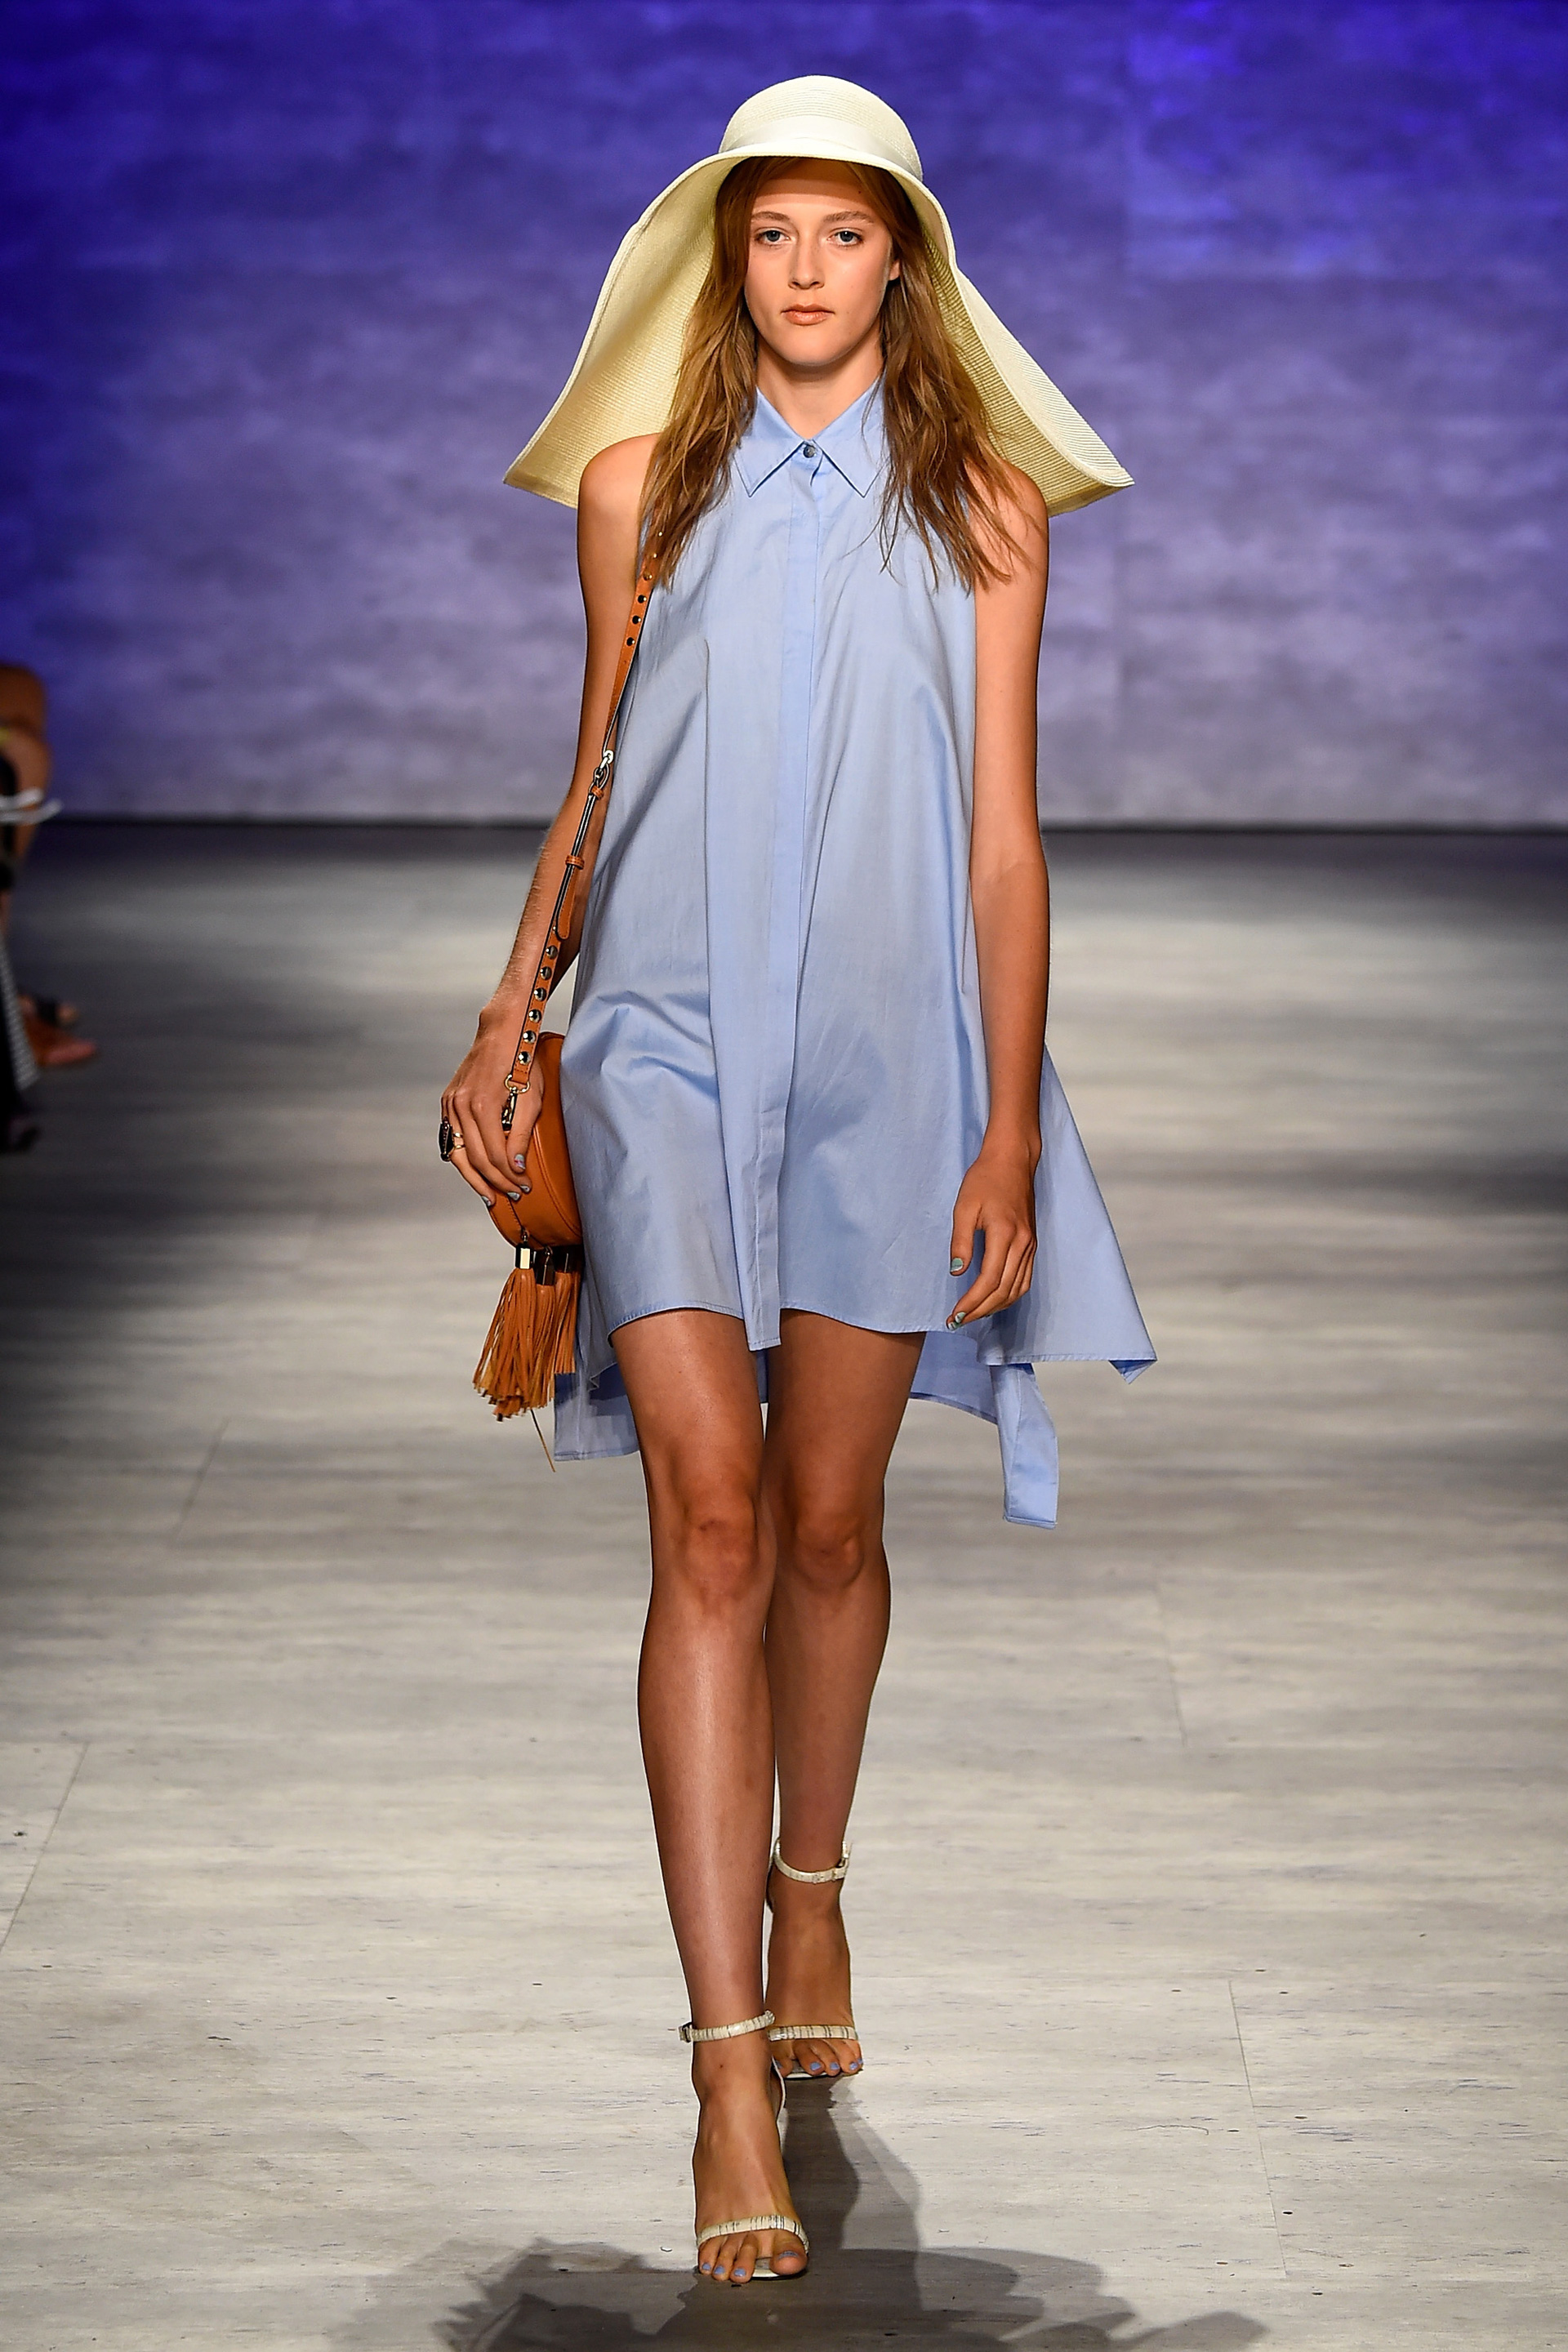 Must-see outfits from Rebecca Minkoff's spring collection 4